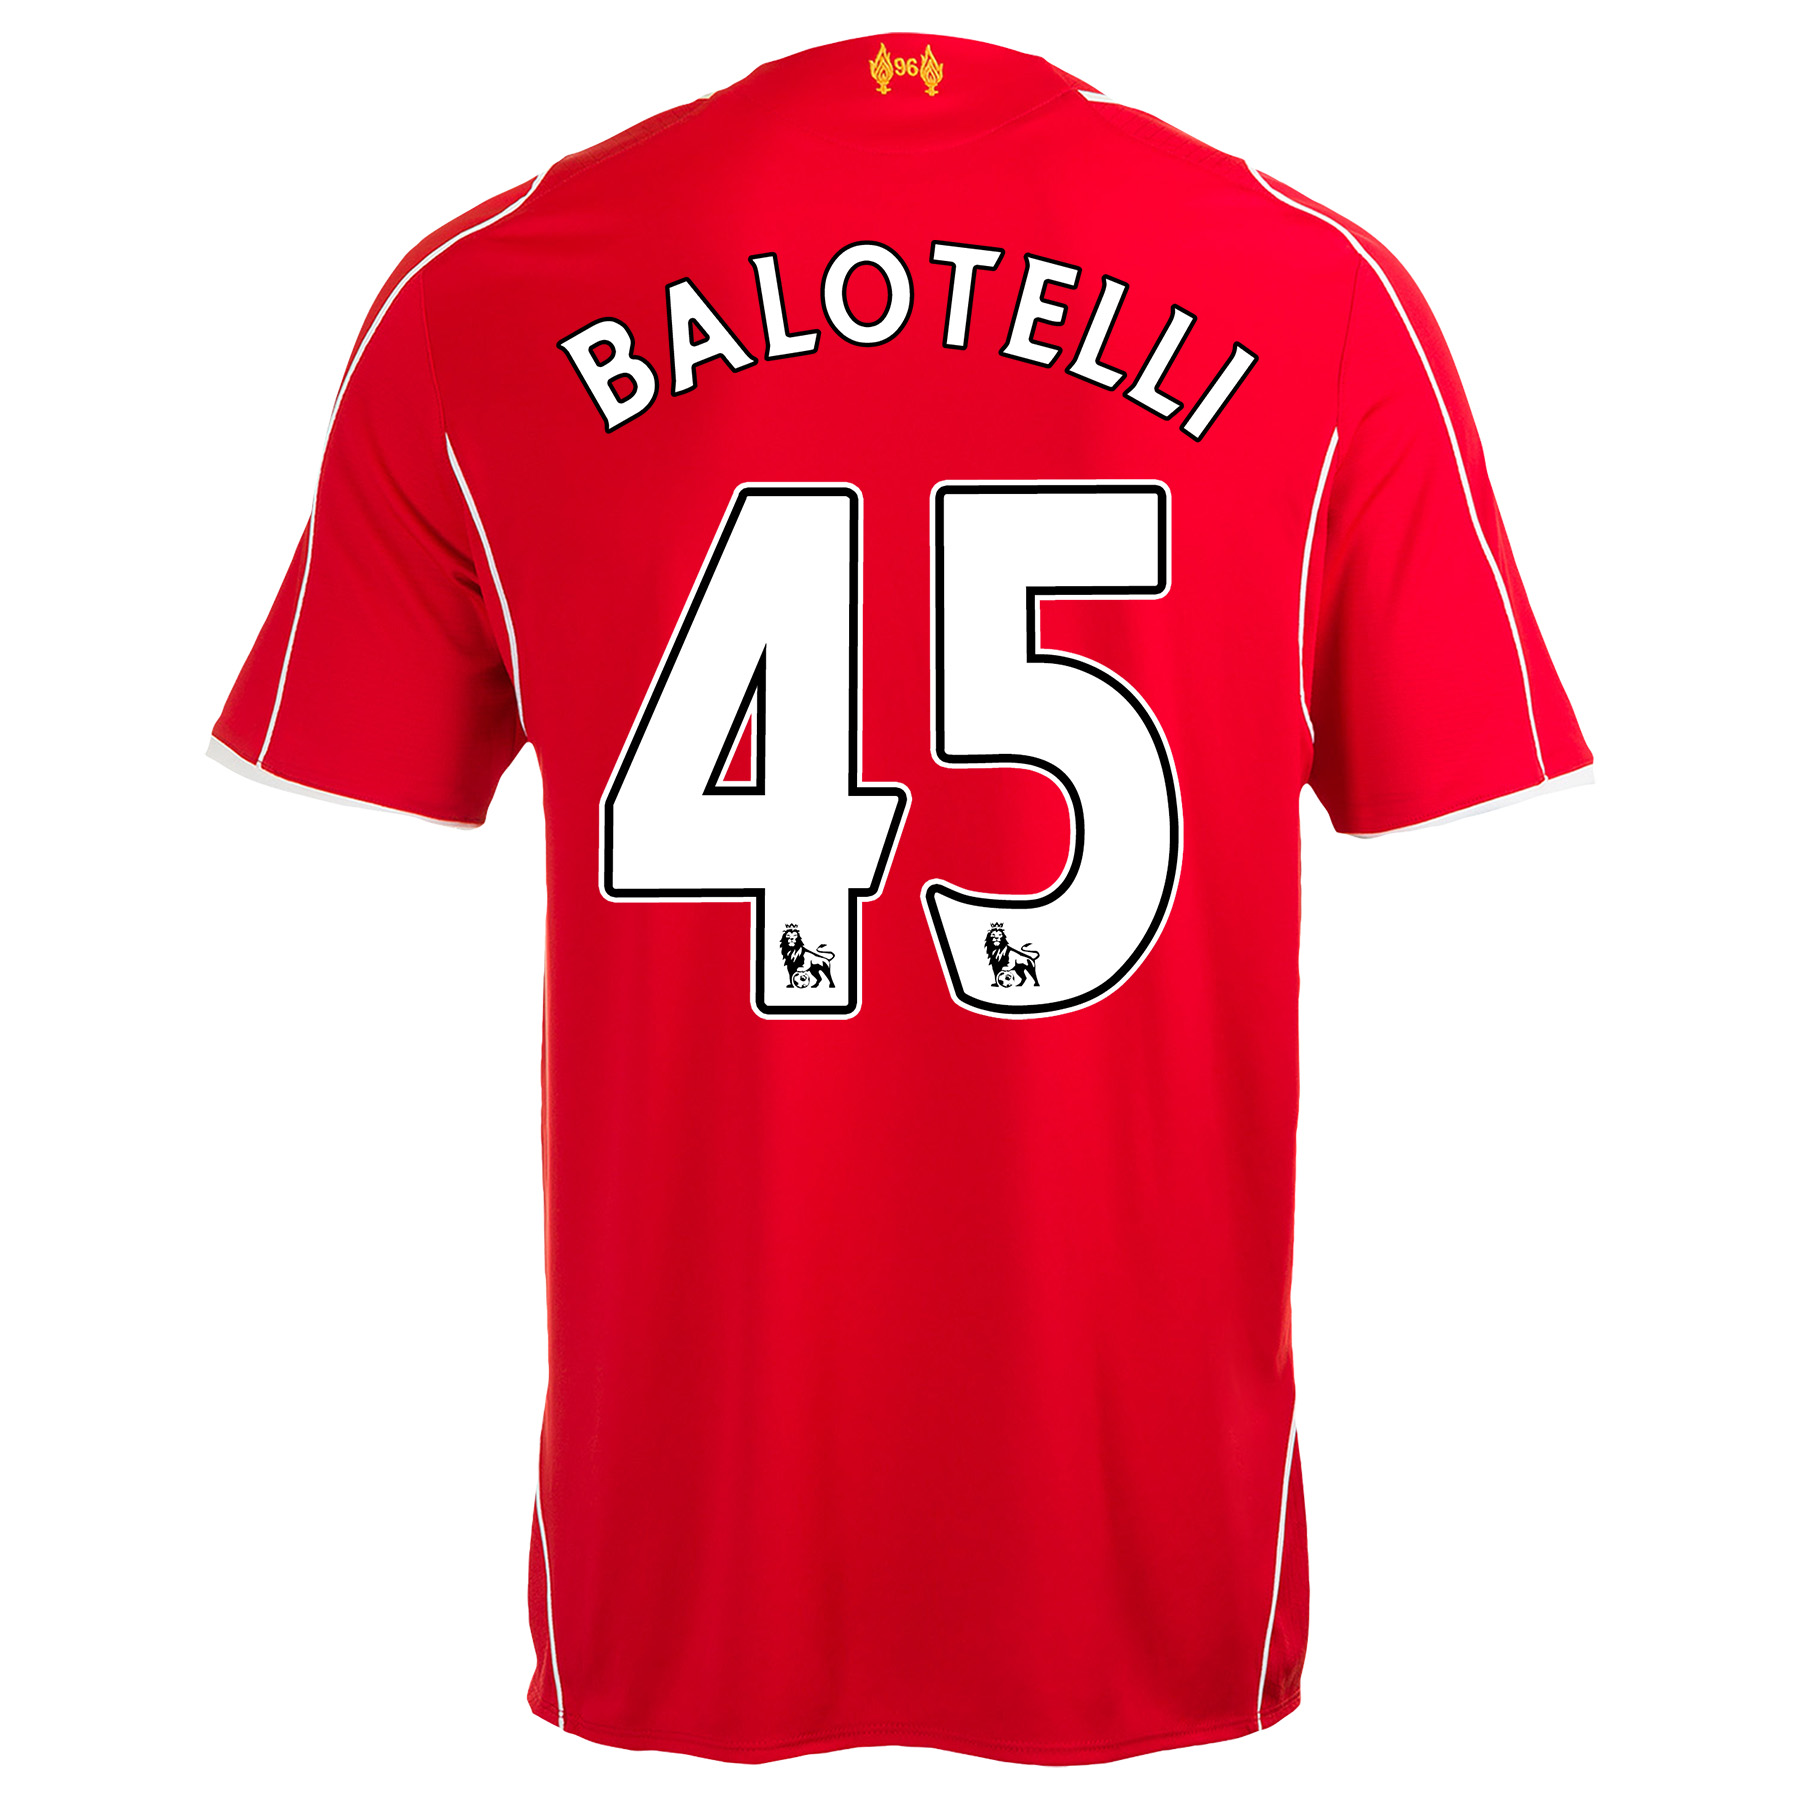 Liverpool Home Shirt 2014/15 with Balotelli 45 printing